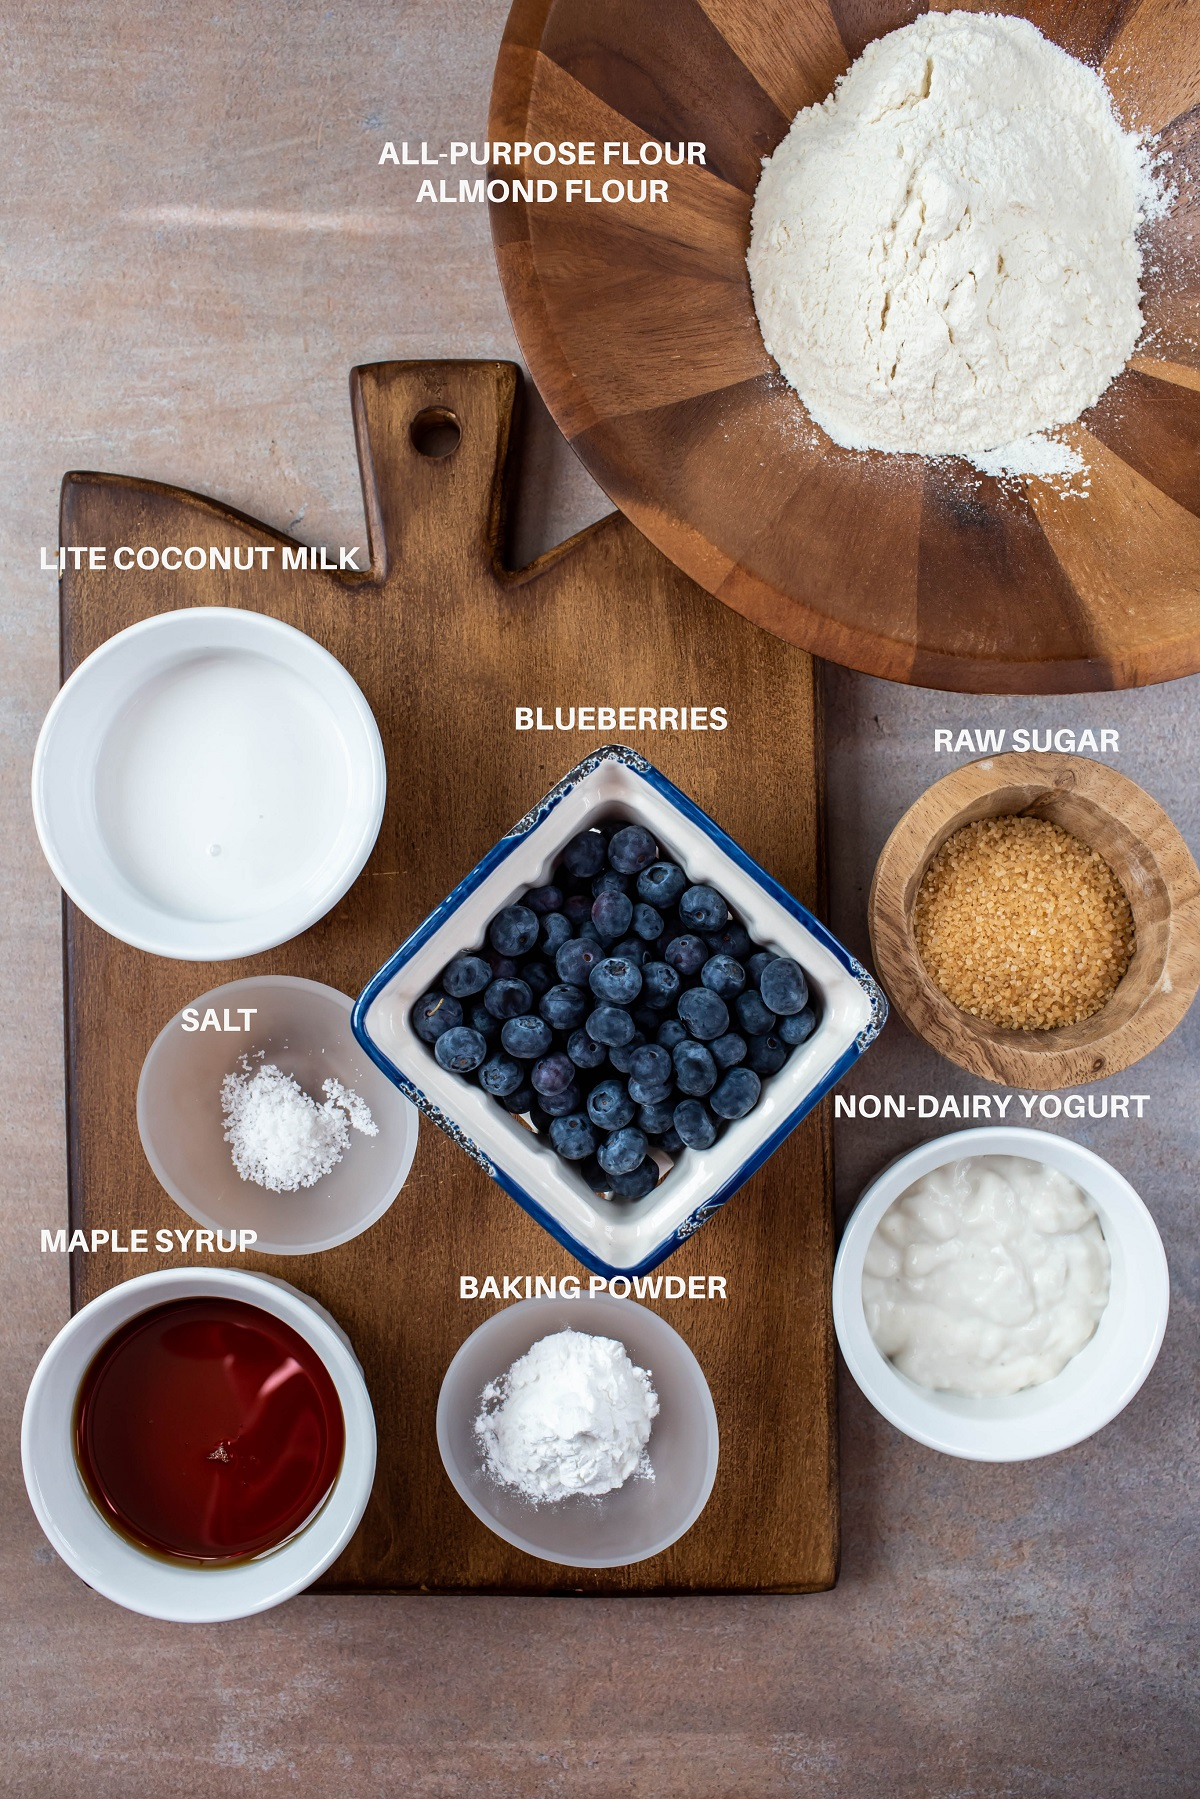 ingredients for vegan blueberry muffins in individual bowls on wood platter